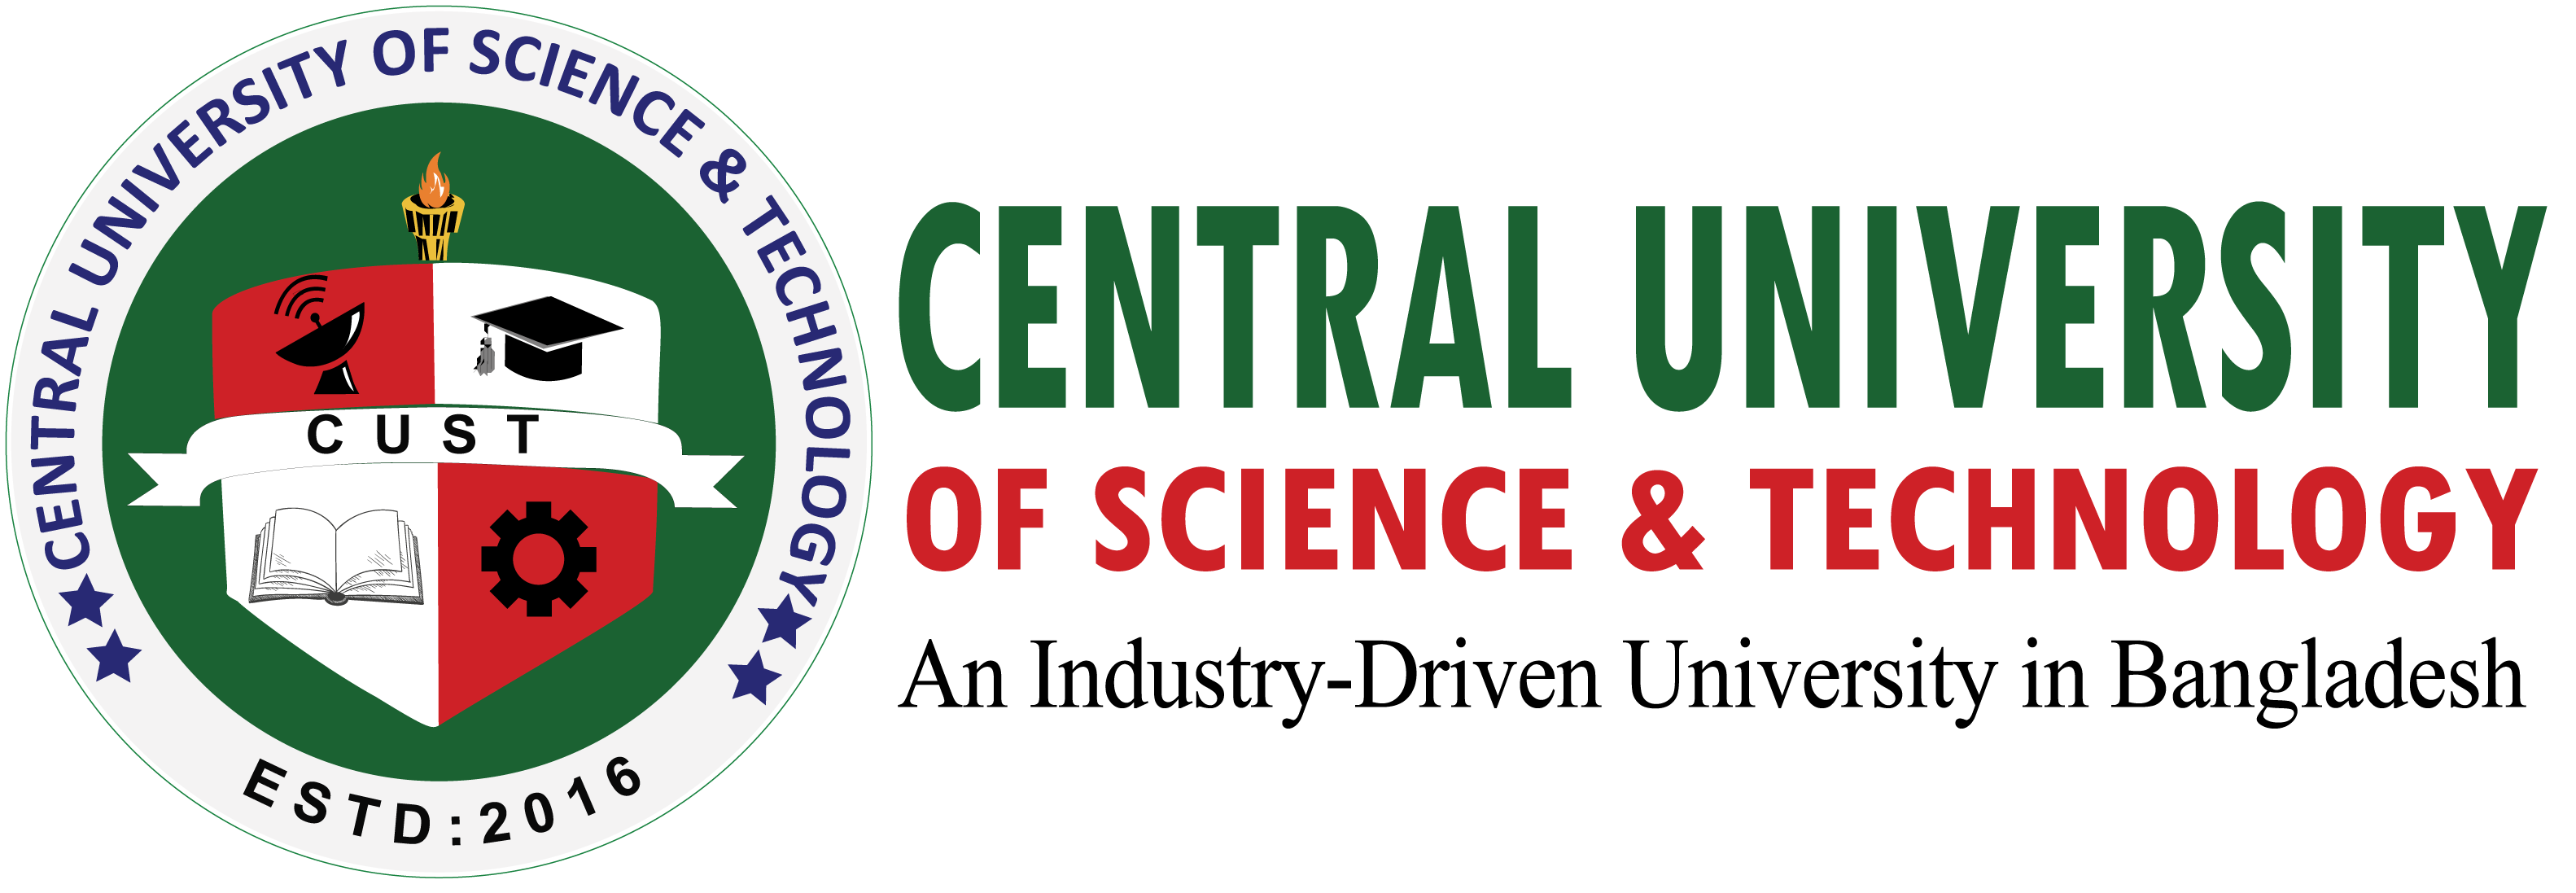 Admission Open, Fall (Bijoy) 2018 - Central University of Science and Technology